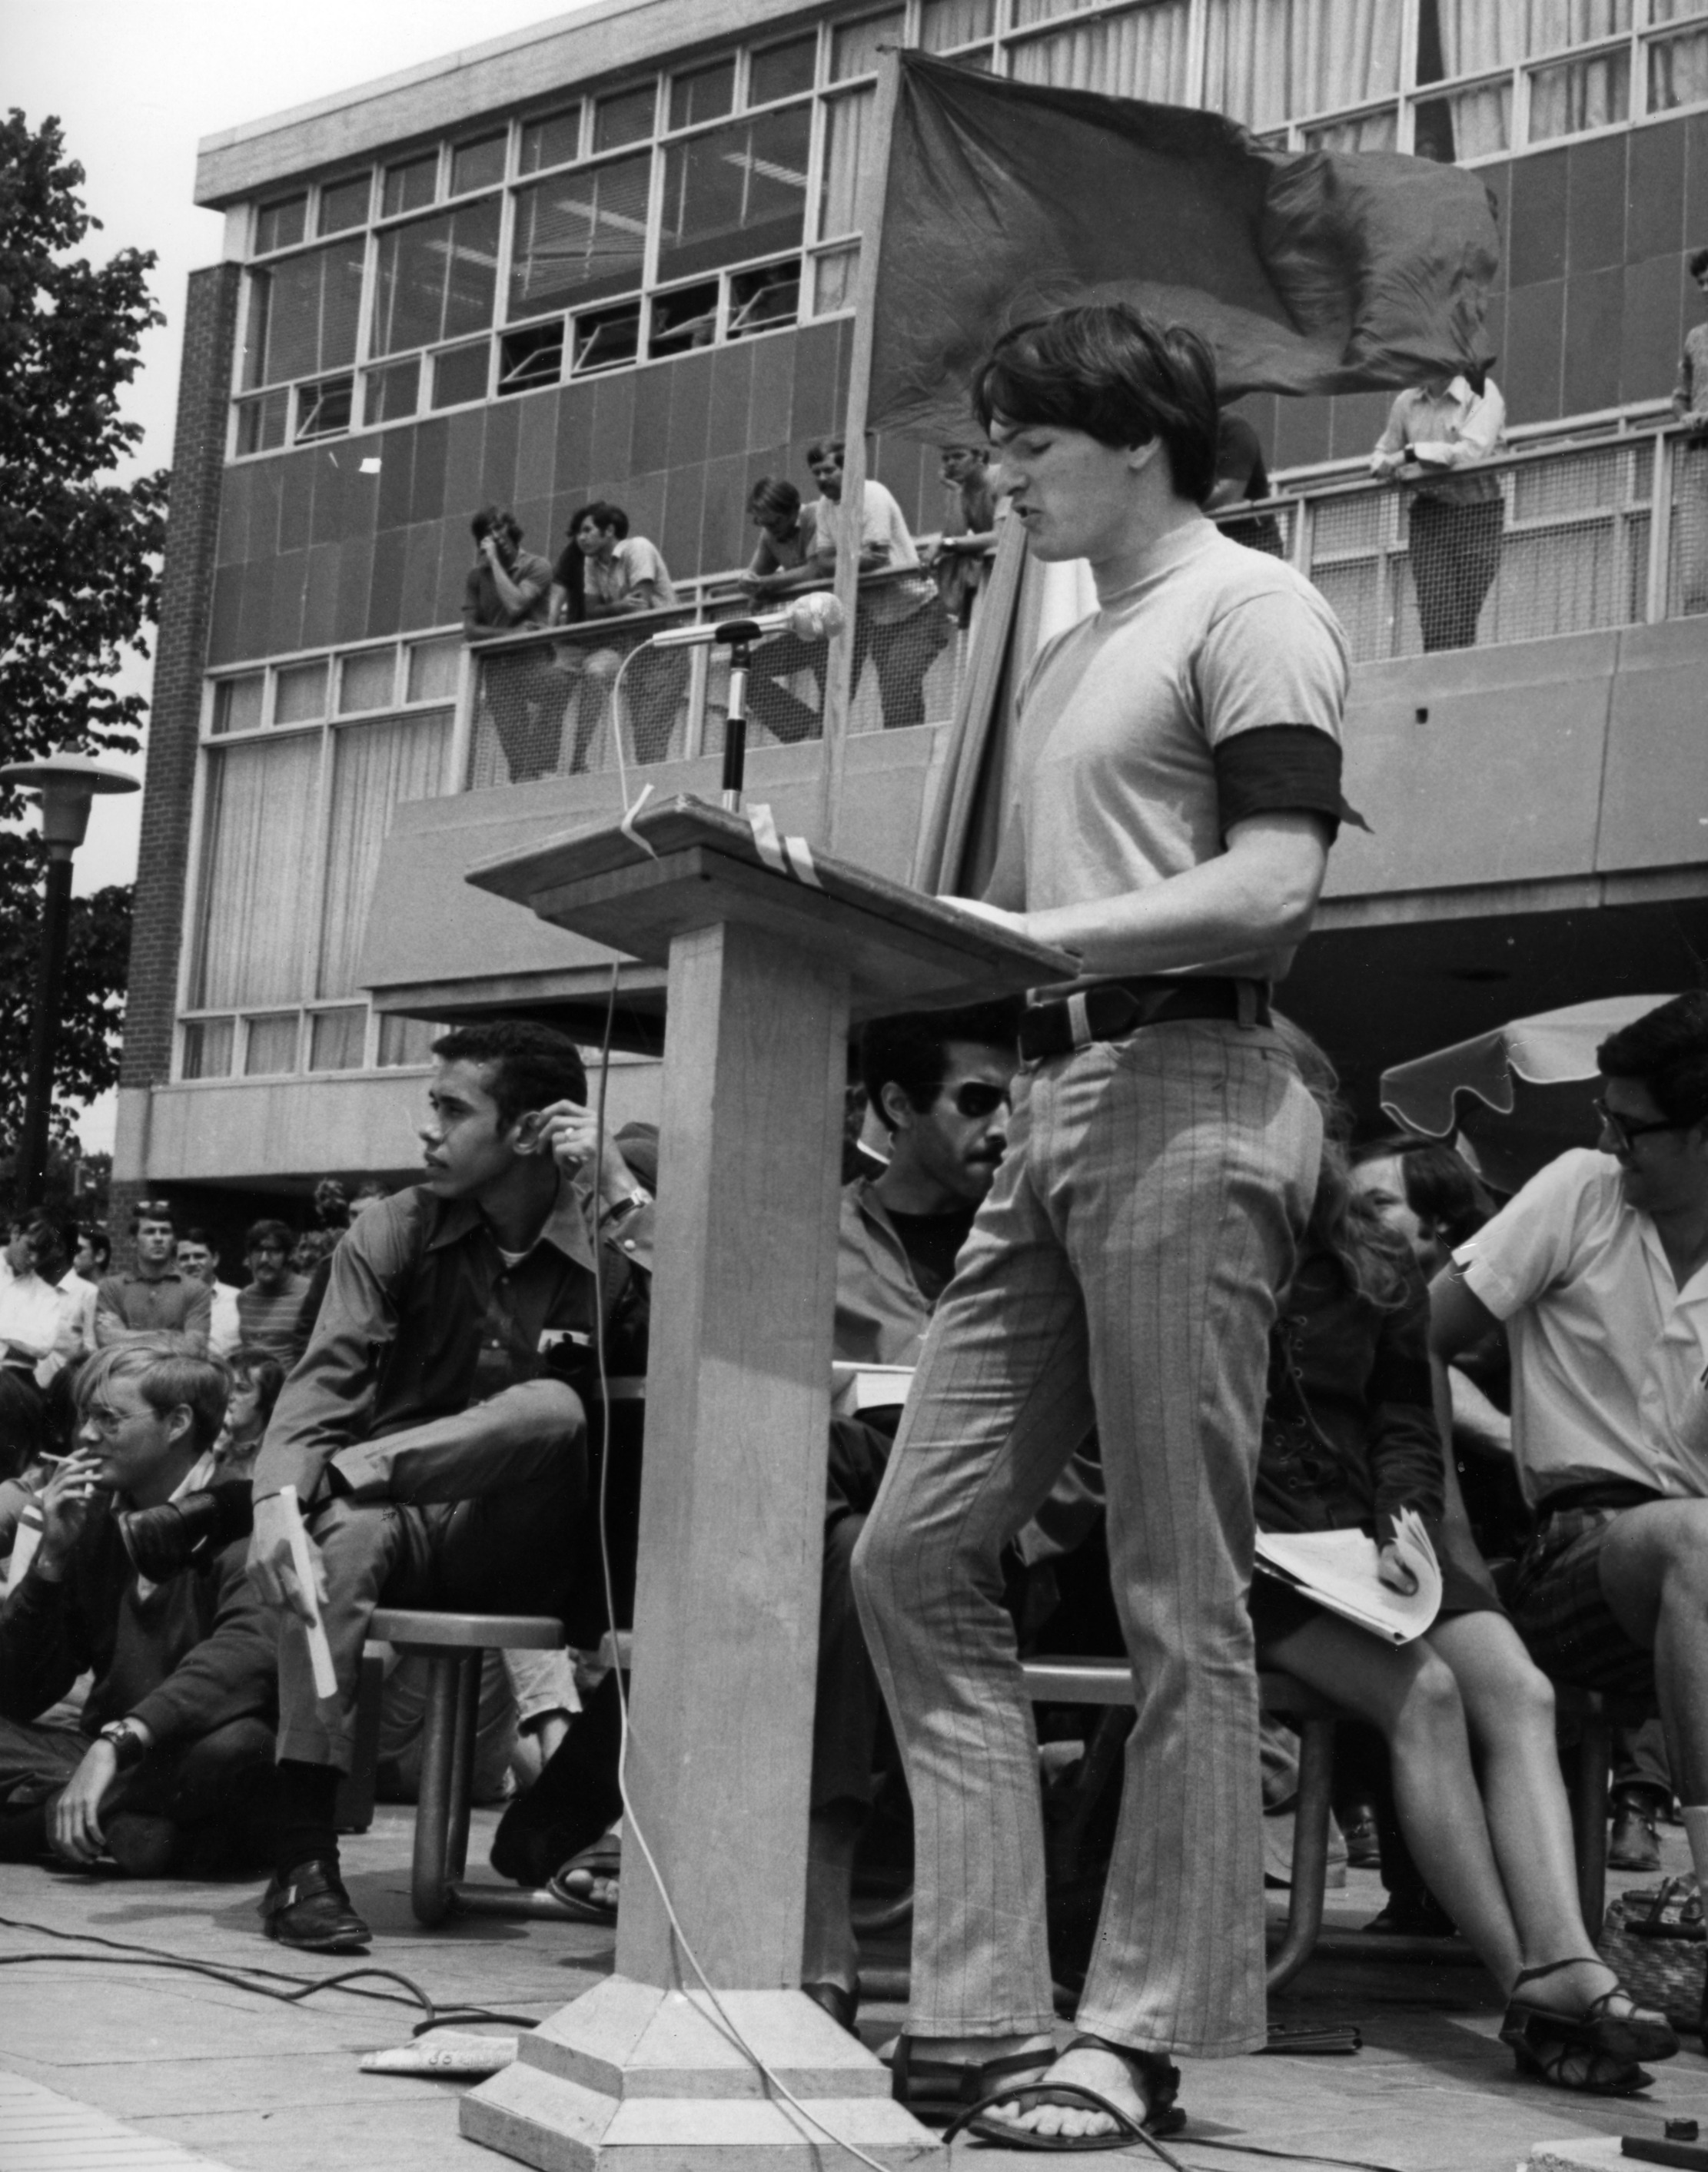 Student giving speech by a podium